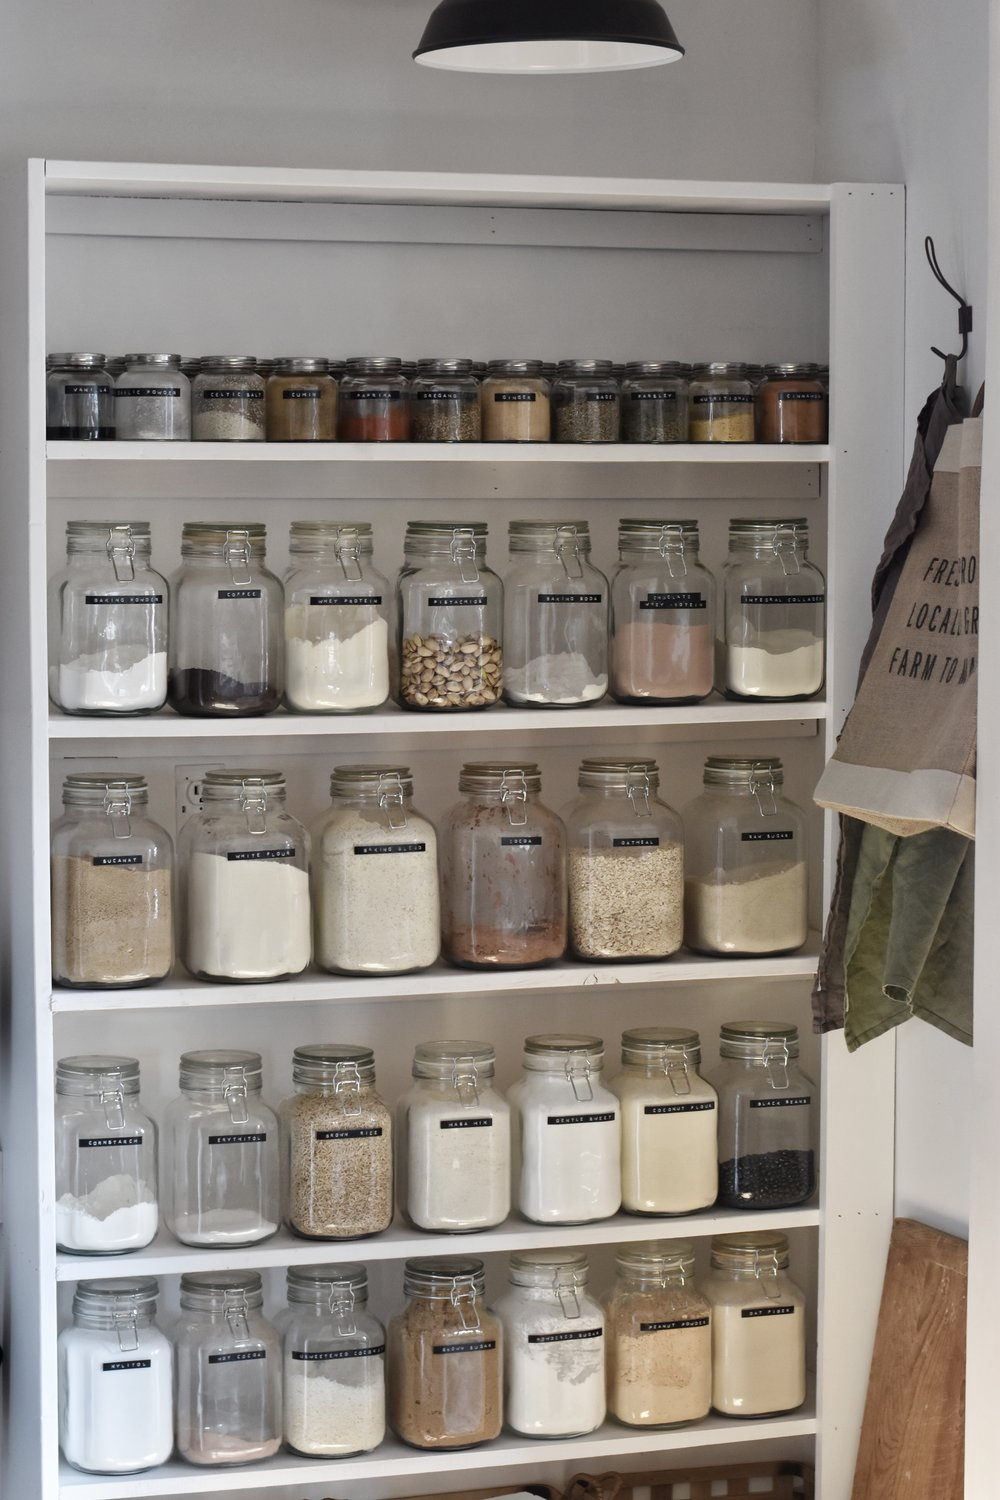 Pantry organization idea for storing spices, herbs and seasonings | Rocky Hedge Farm